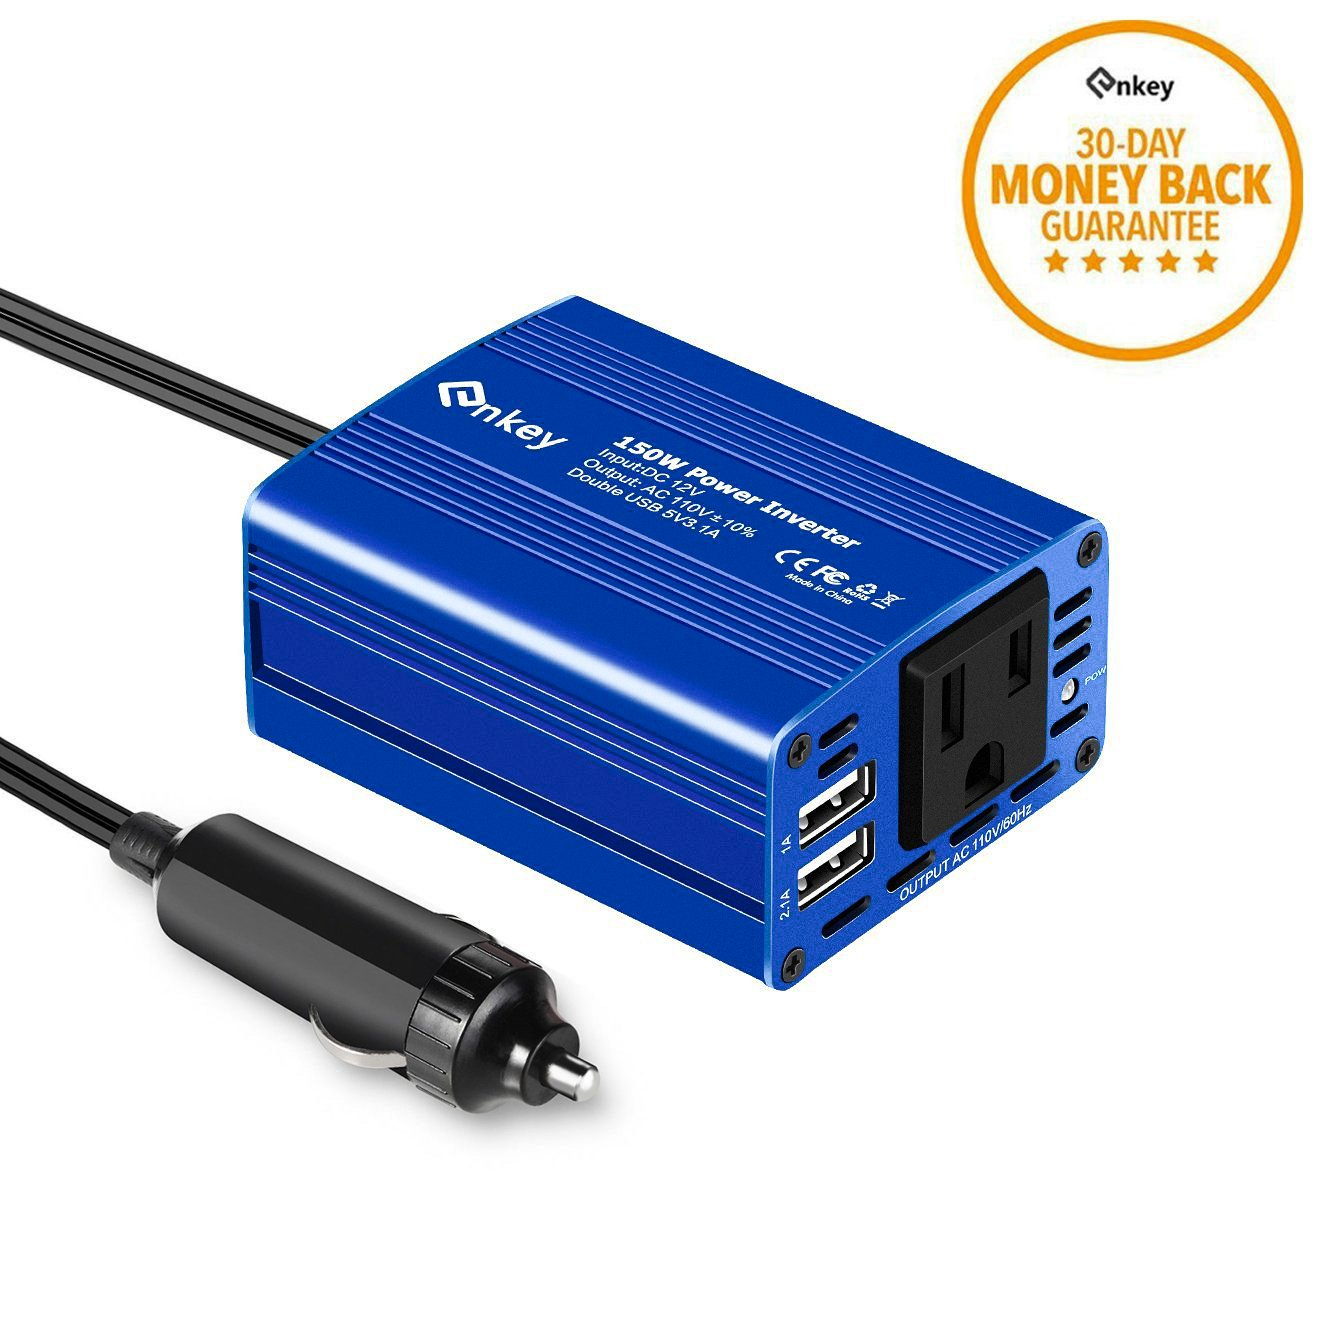 Enkey 150W Car Power Inverter DC 12V to 110V AC Converter with 3.1A Dual USB Charger - Blue by Enkey (Image #1)